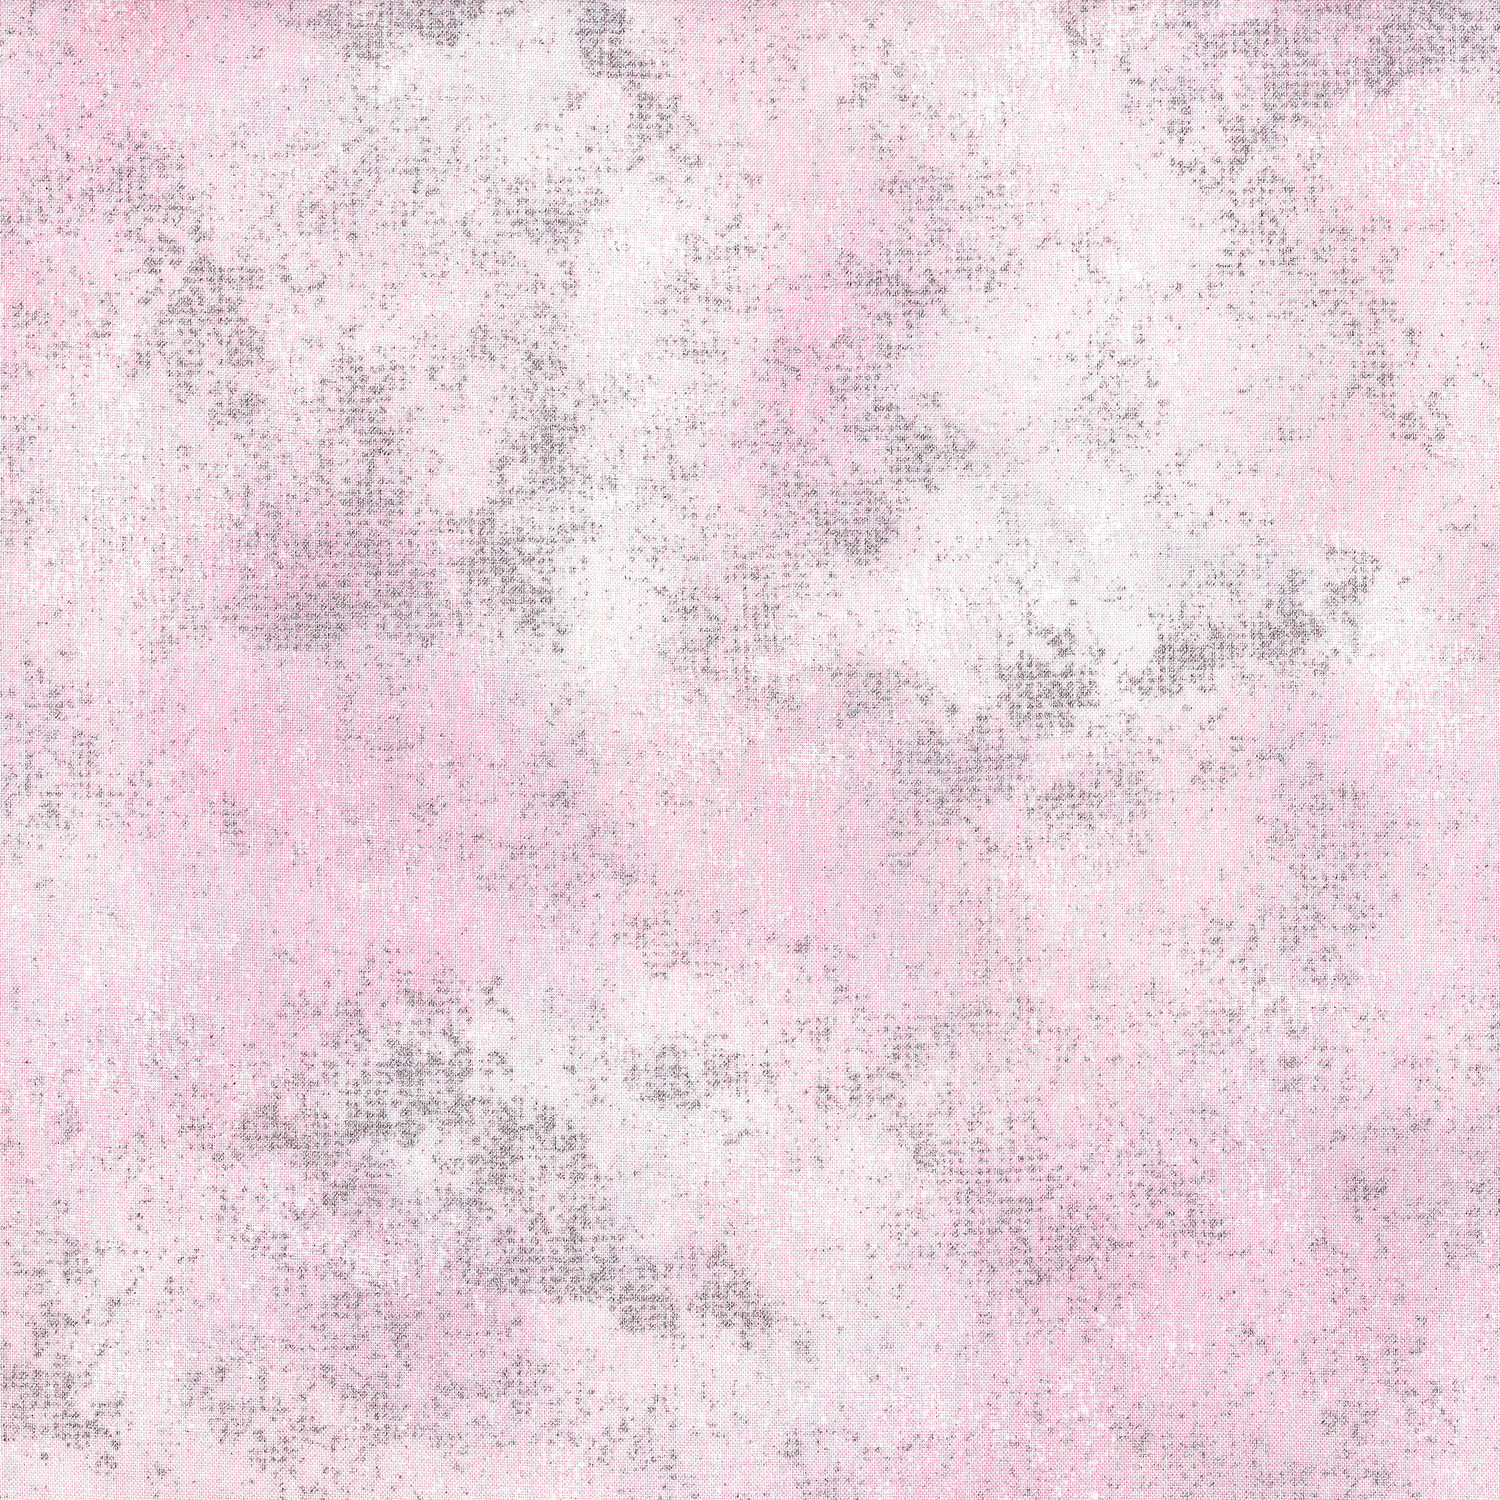 2891-014  RUSTIC SHIMMER-PEARL PINK